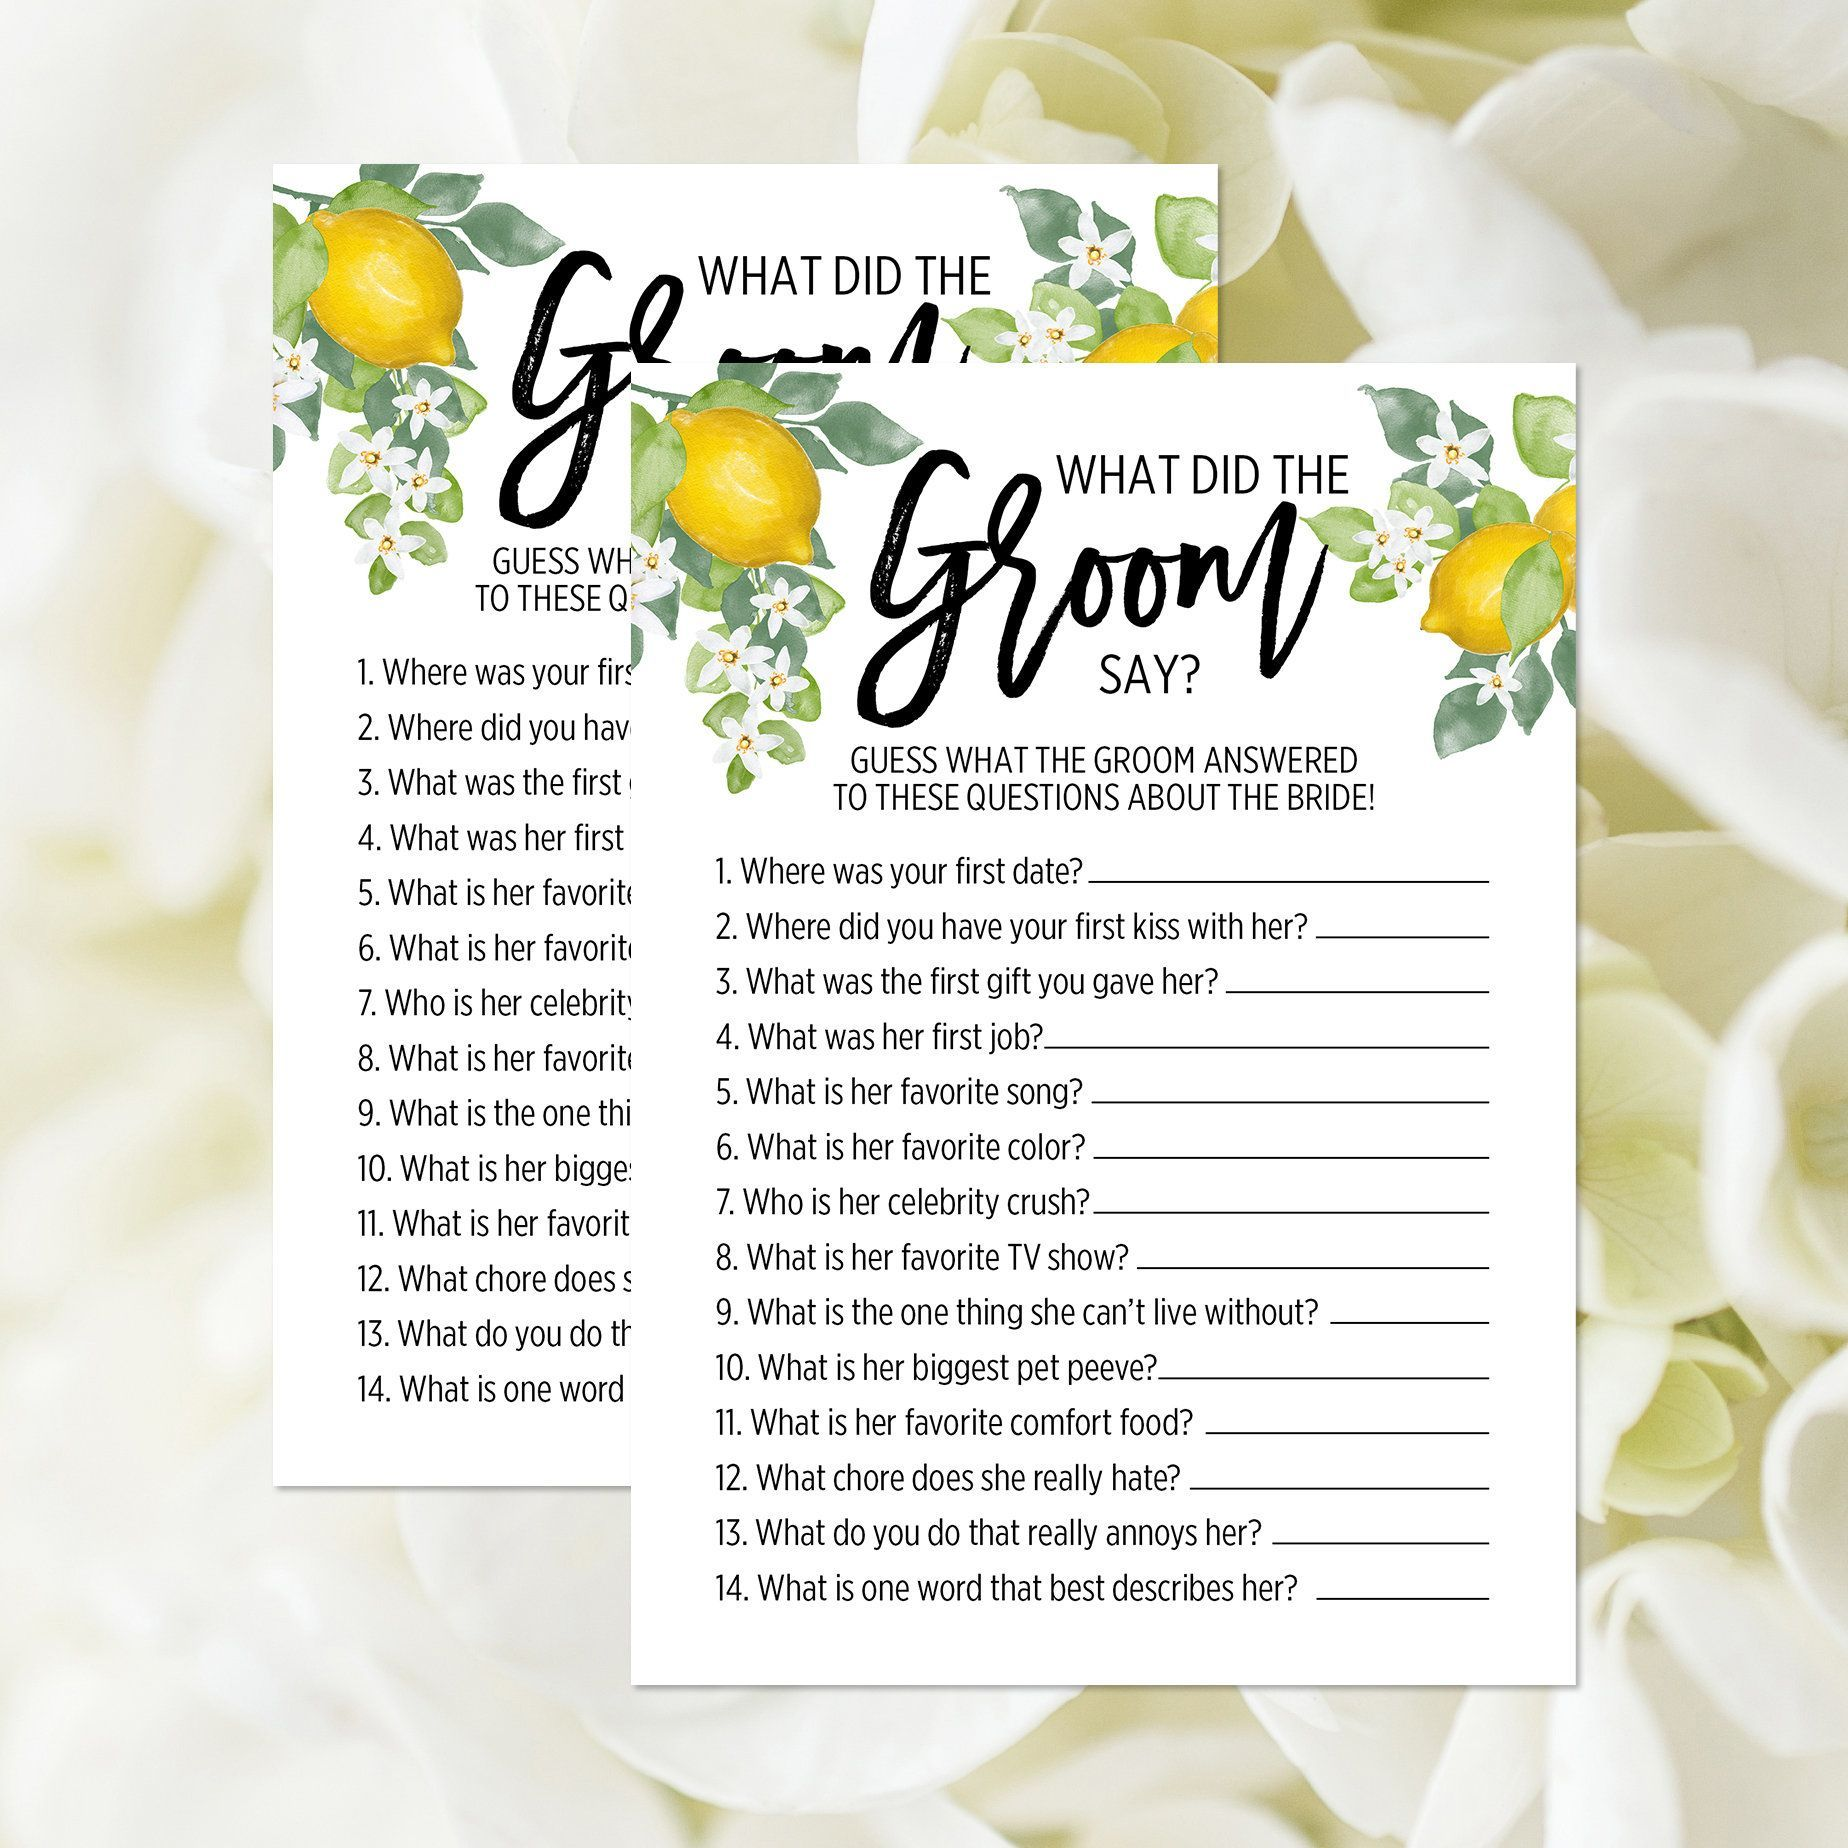 What Did The Groom Say Game, Printable, Groom's Questions, Lemon Bridal Shower Game, Guessing Game, Citrus Wedding Shower, Fruit 376#bridal #citrus #fruit #game #groom #grooms #guessing #lemon #printable #questions #shower #wedding